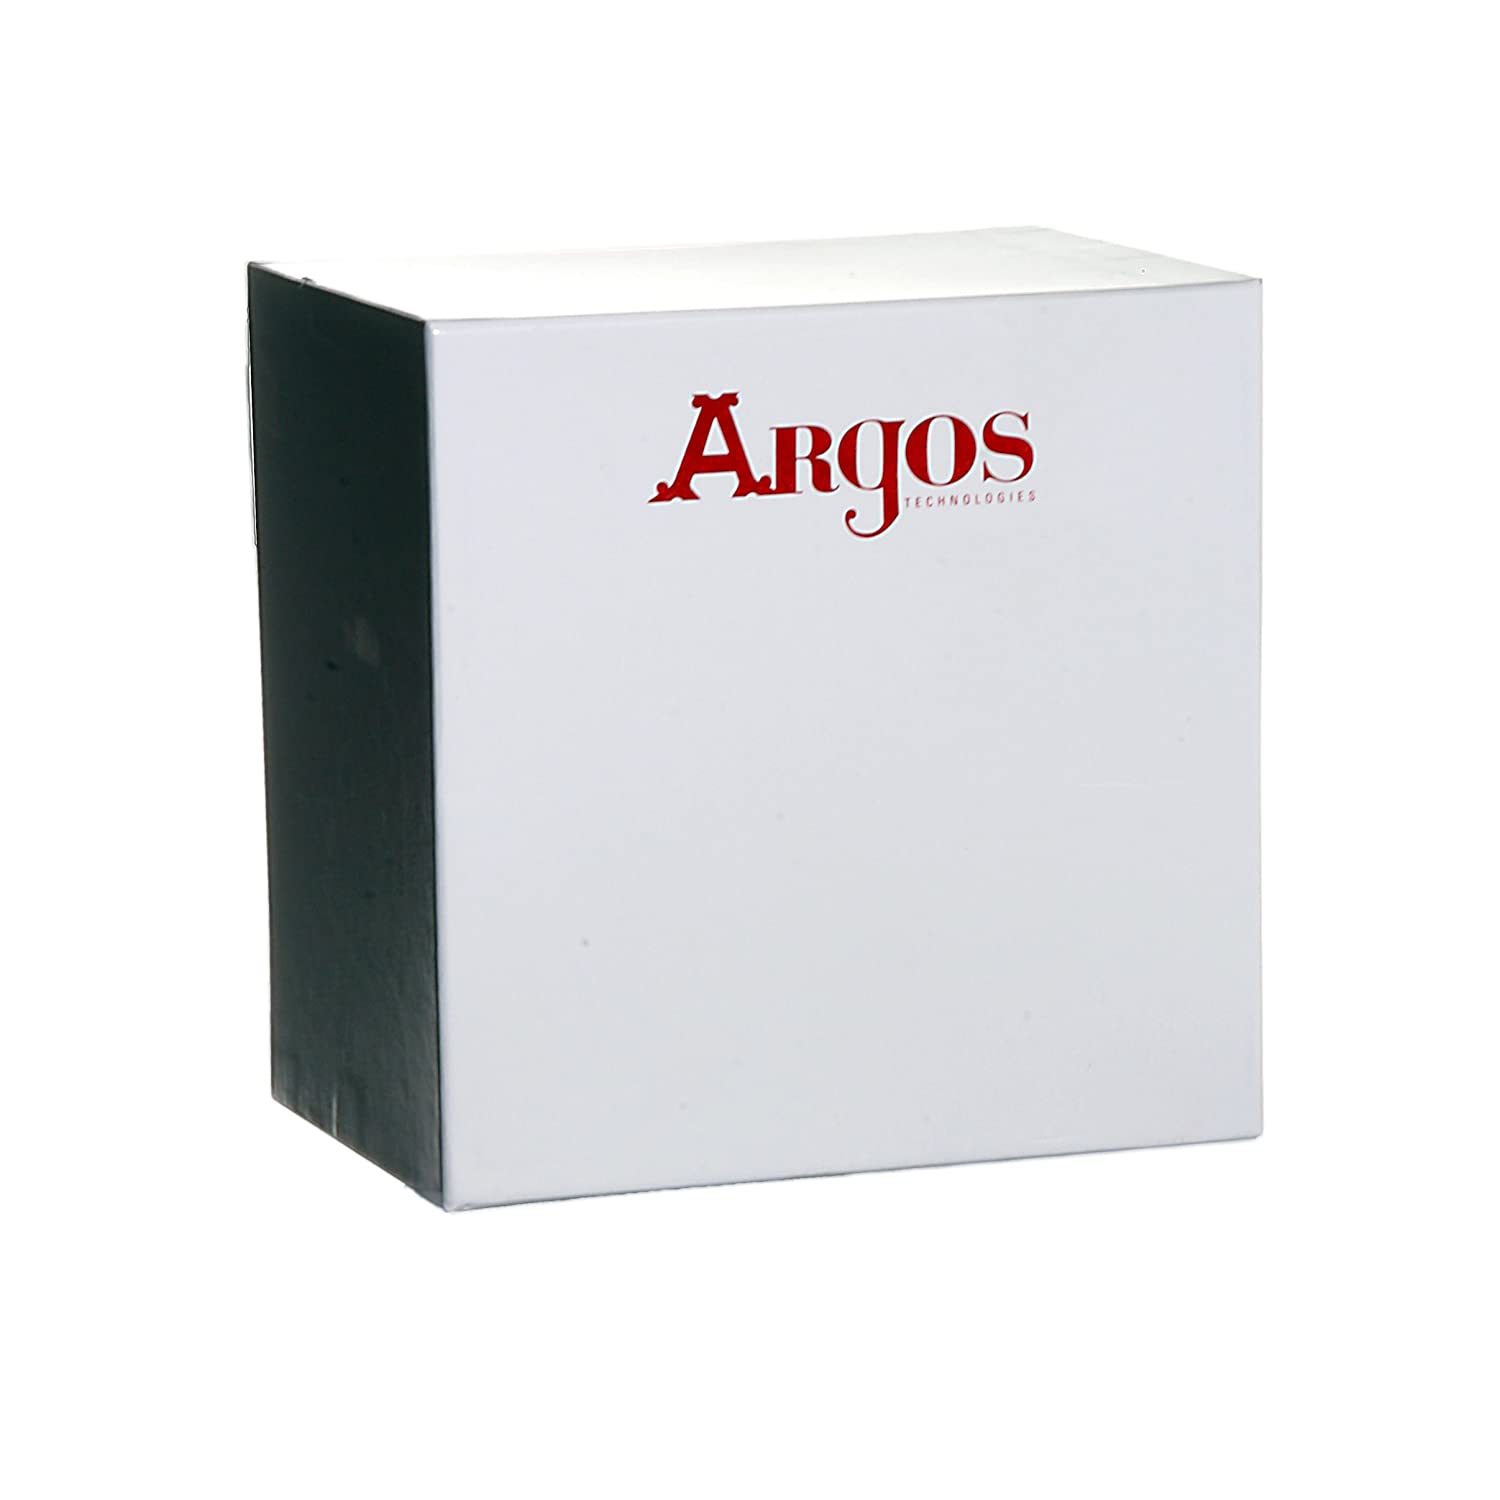 "Argos R3025A White Cryo/Freezer Box with 25 Place Insert, 3"" Length x 3"" Width x 2"" Height"